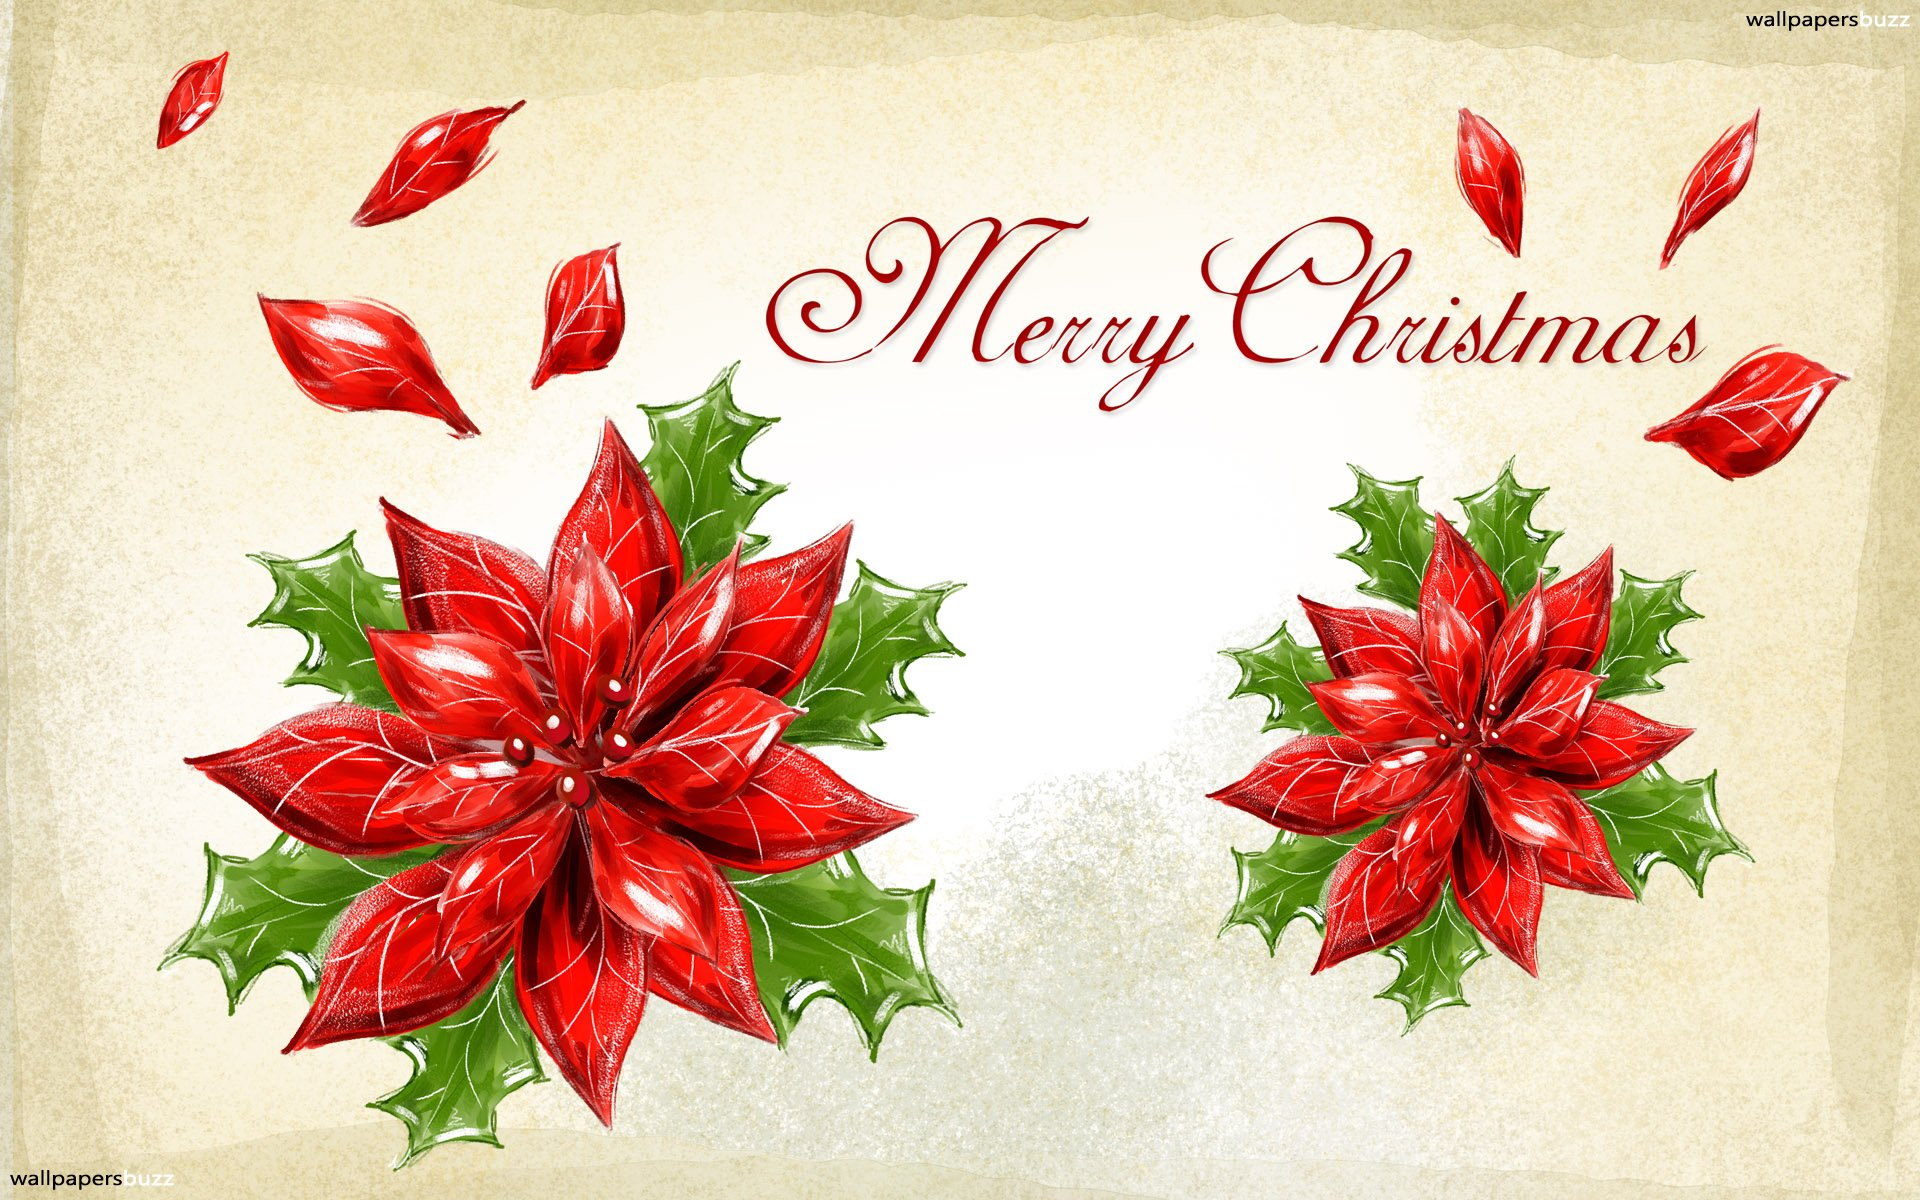 Free Download Merry Christmas Card Hd Wallpaper 1920x1200 For Your Desktop Mobile Tablet Explore 29 Christmas Cards Wallpapers Christmas Cards Wallpapers Christmas Cards And Gifts Wallpapers Cards Wallpaper